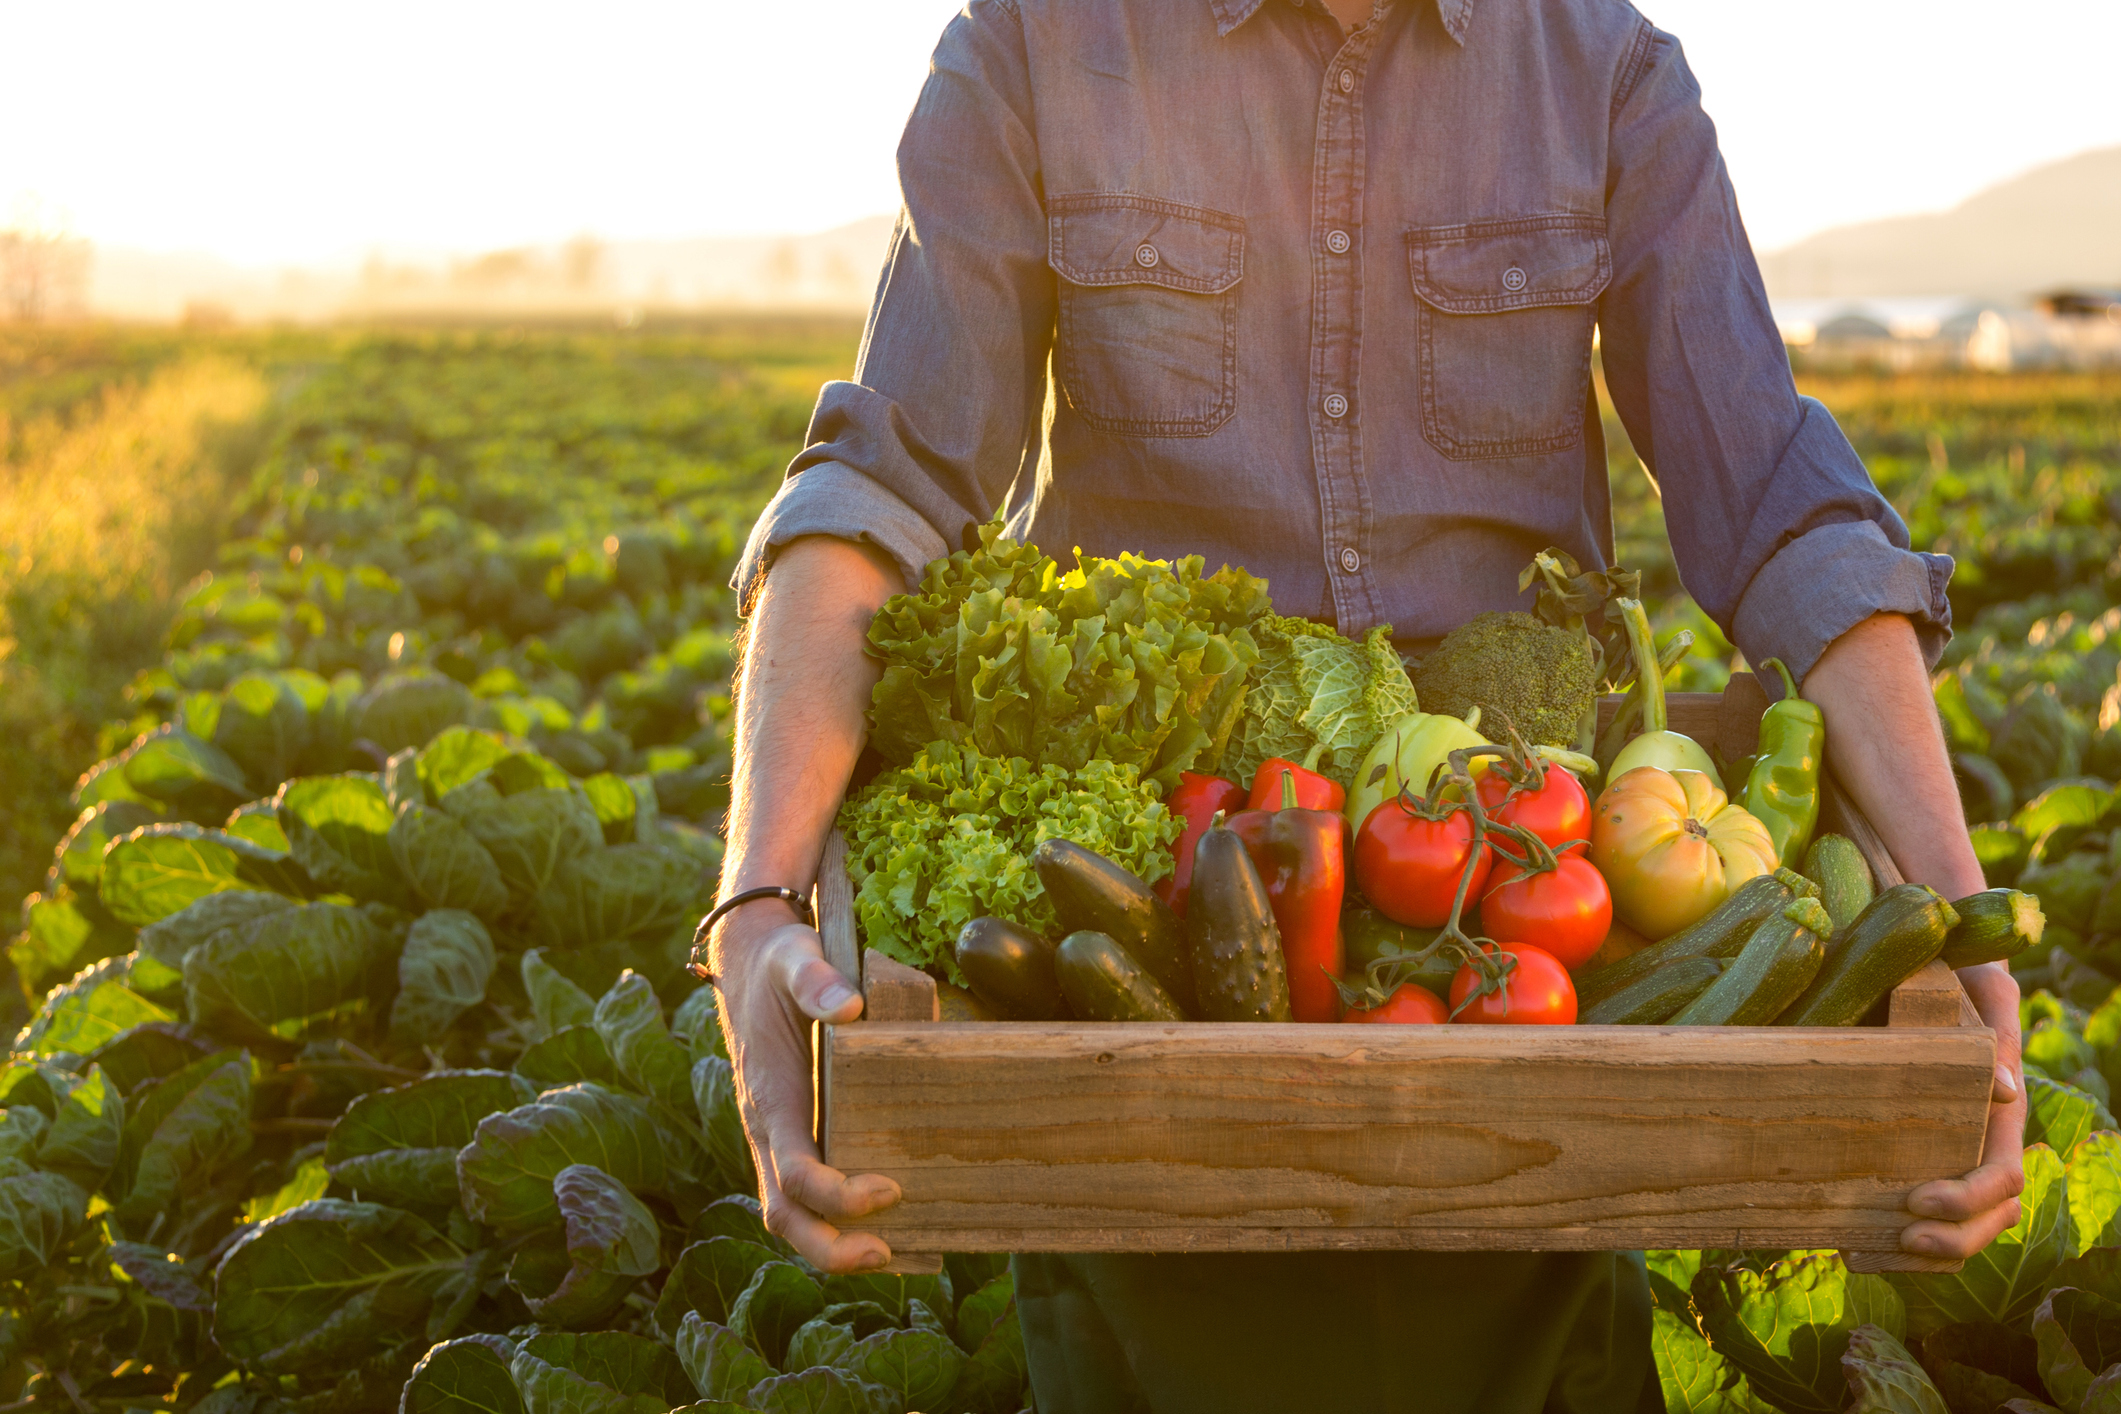 In a long-term survival situation, knowing how to grow your own food may be essential.